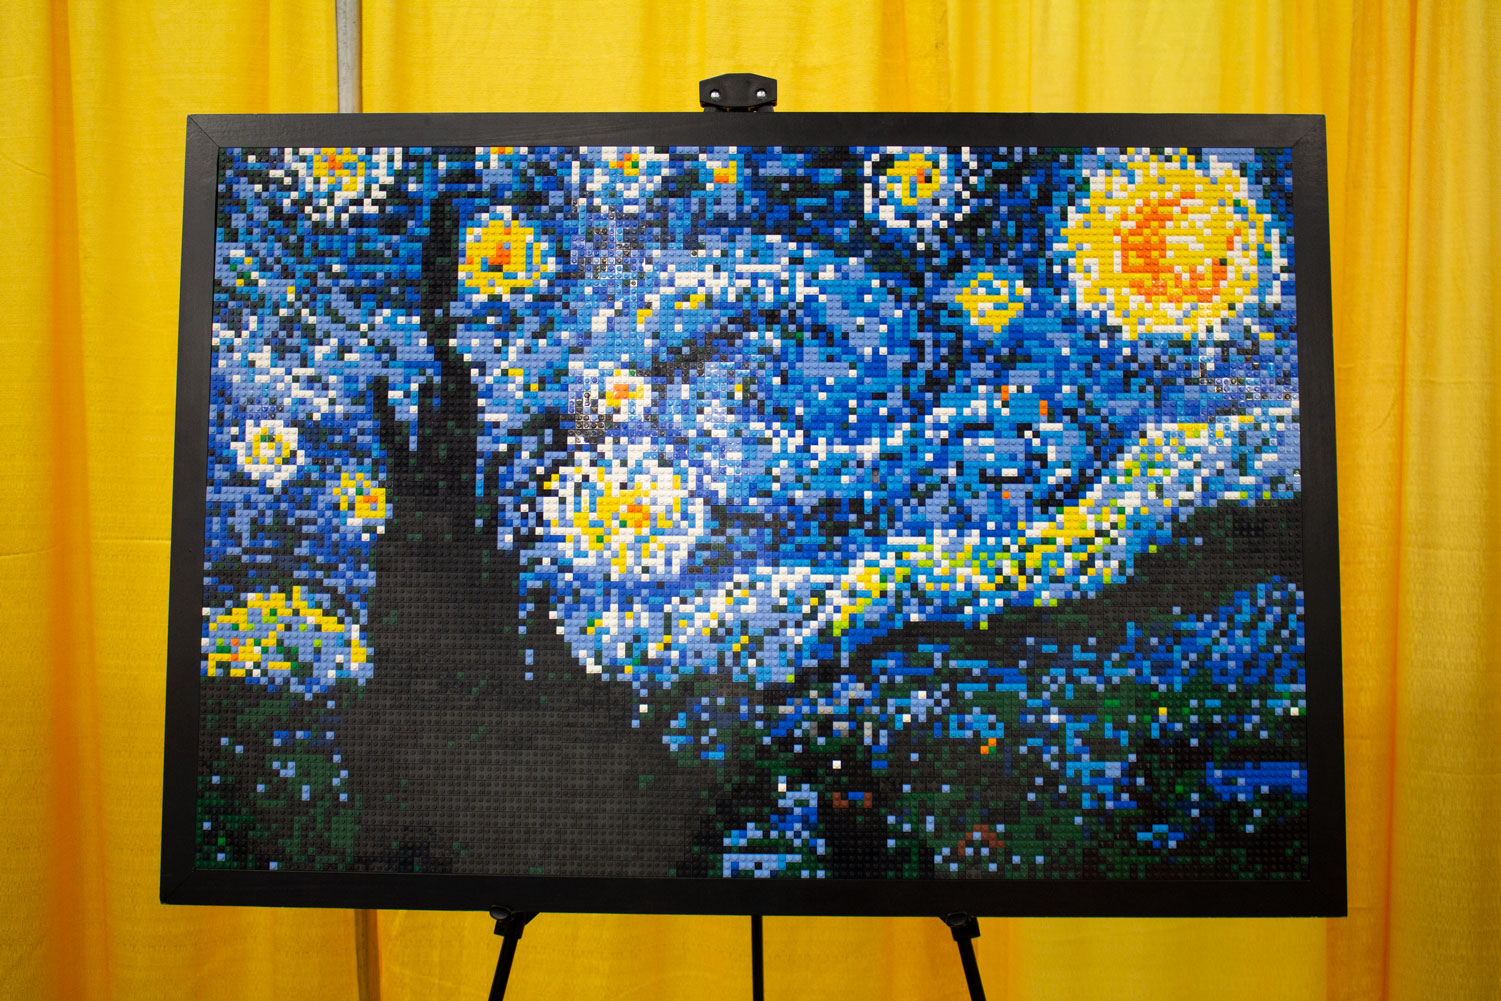 A+reproduction+of+Vincent+van+Gogh%27s+famous+%22The+Starry+Night%22+by+artist+Abbie+Bocan.+This+piece+of+art+is+made+up+of+8%2C515+Lego+bricks+and+took+the+artist+42+hours+to+create.